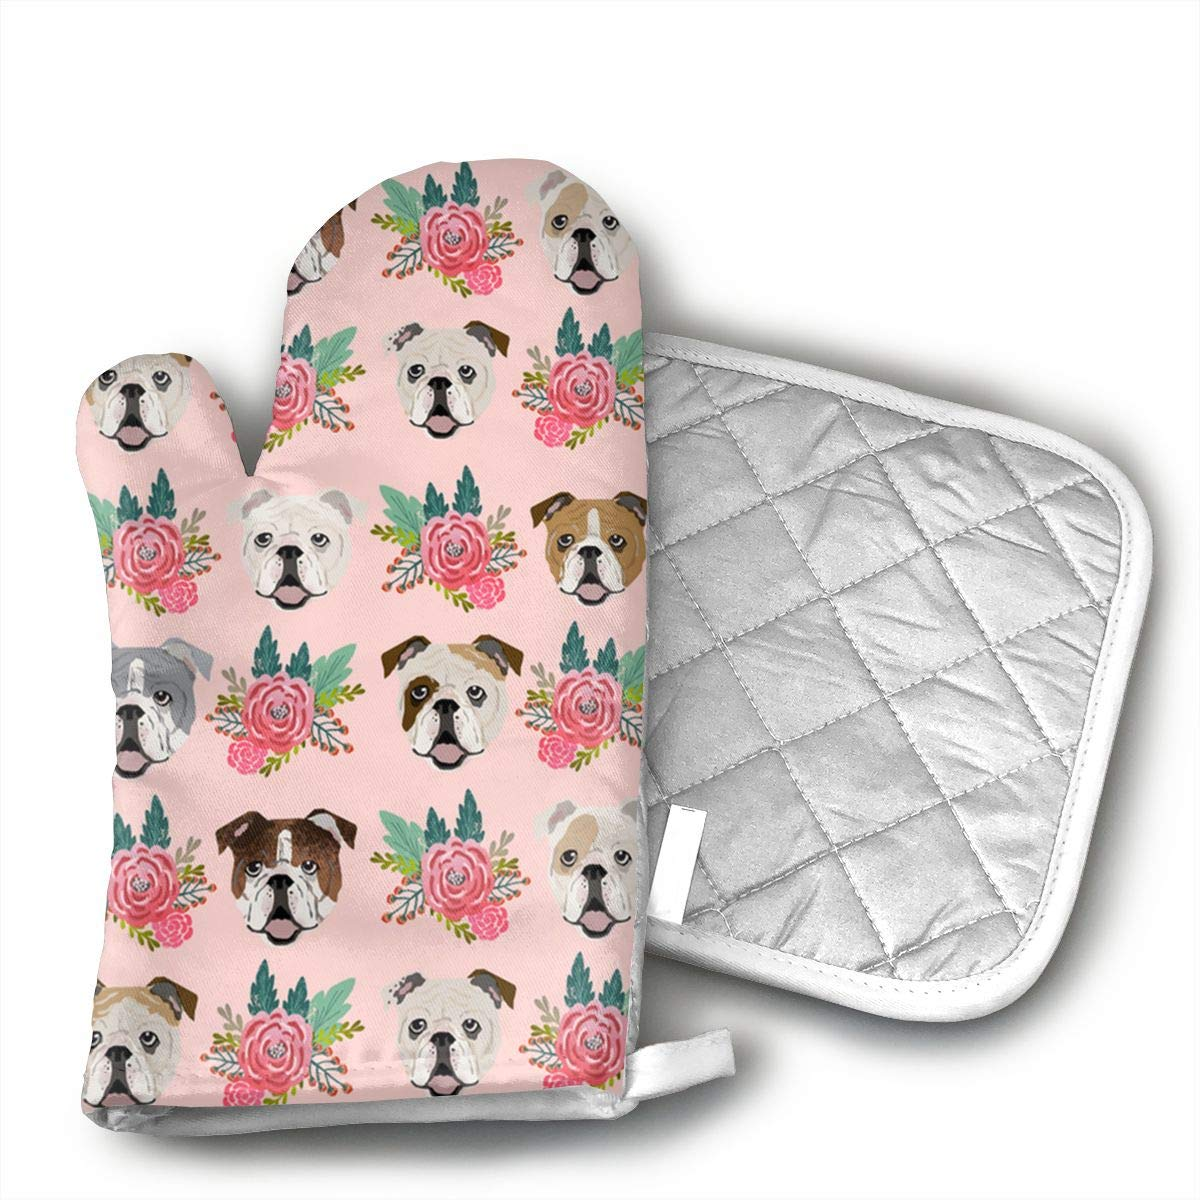 QEDGC English Bulldog Pink Florals Oven Mitts Kitchen Cooking Cotton Microwave Oven Gloves Mitts Pot Pad Heat Proof Protected Gloves